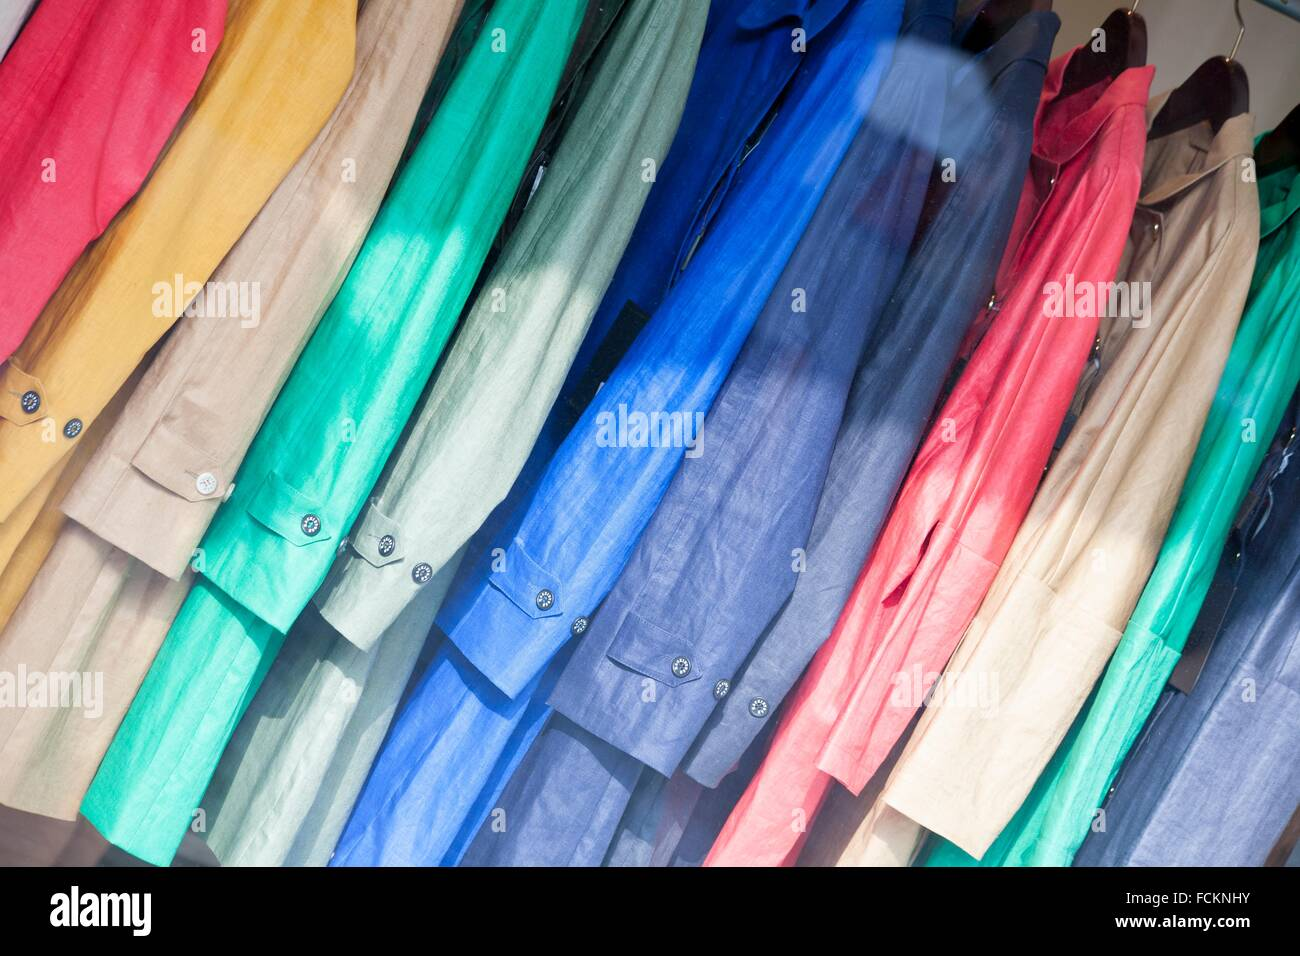 Gotemba Stock Photos Images Alamy Tas Lacoste Zip Basic Special Colours Colour Clothes In Outlet Japan Image